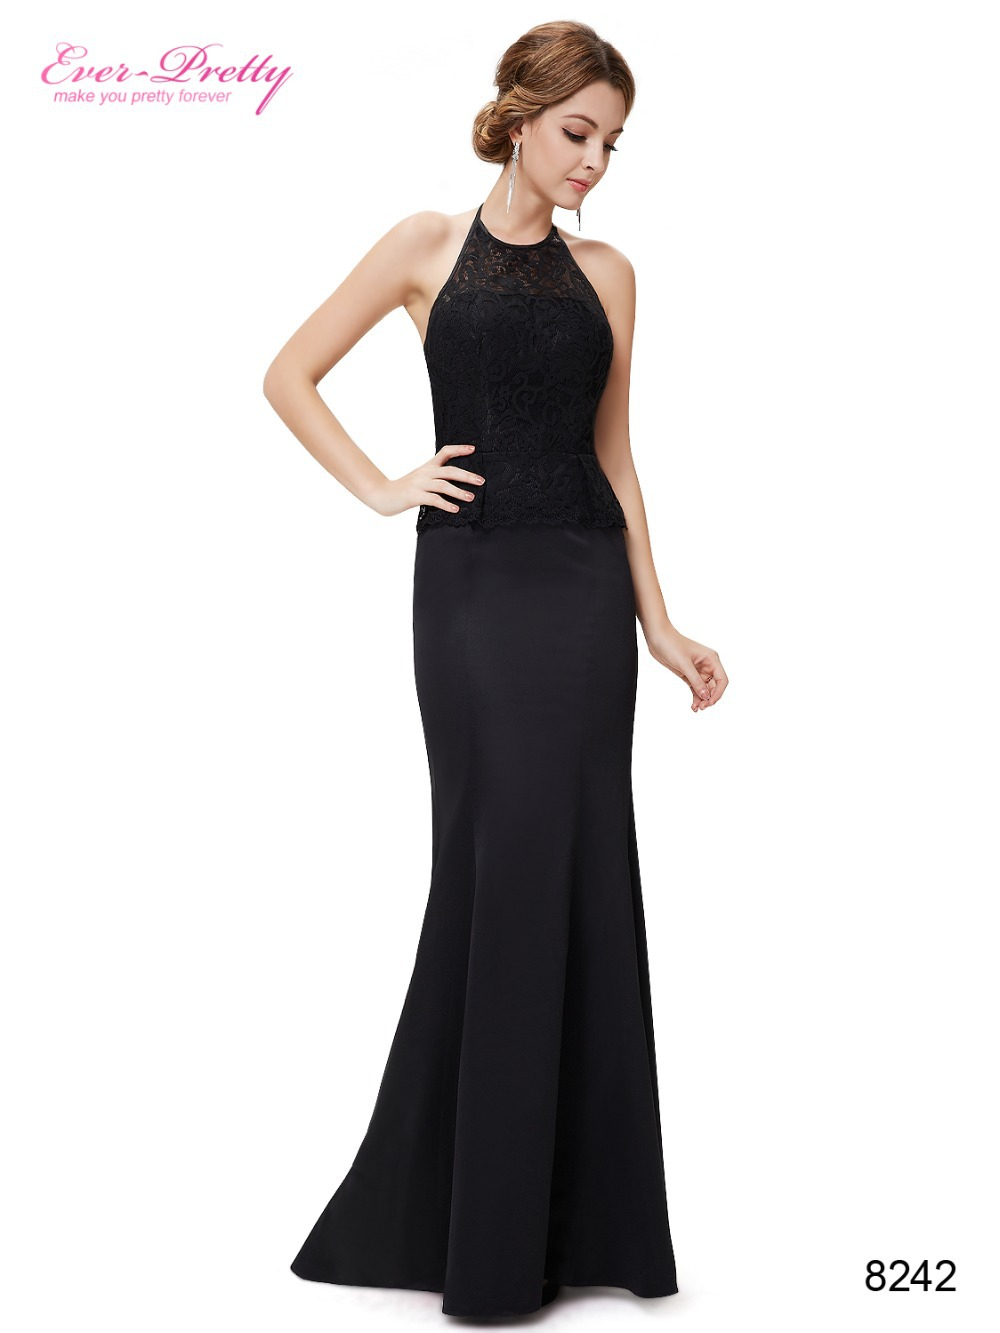 Shy away from the sunshine in a counter-intuitive long sleeve dress to cover the arms, or go for maxi dresses for a slimming, goddess-like look. Glam up for hot nights out in party dresses .